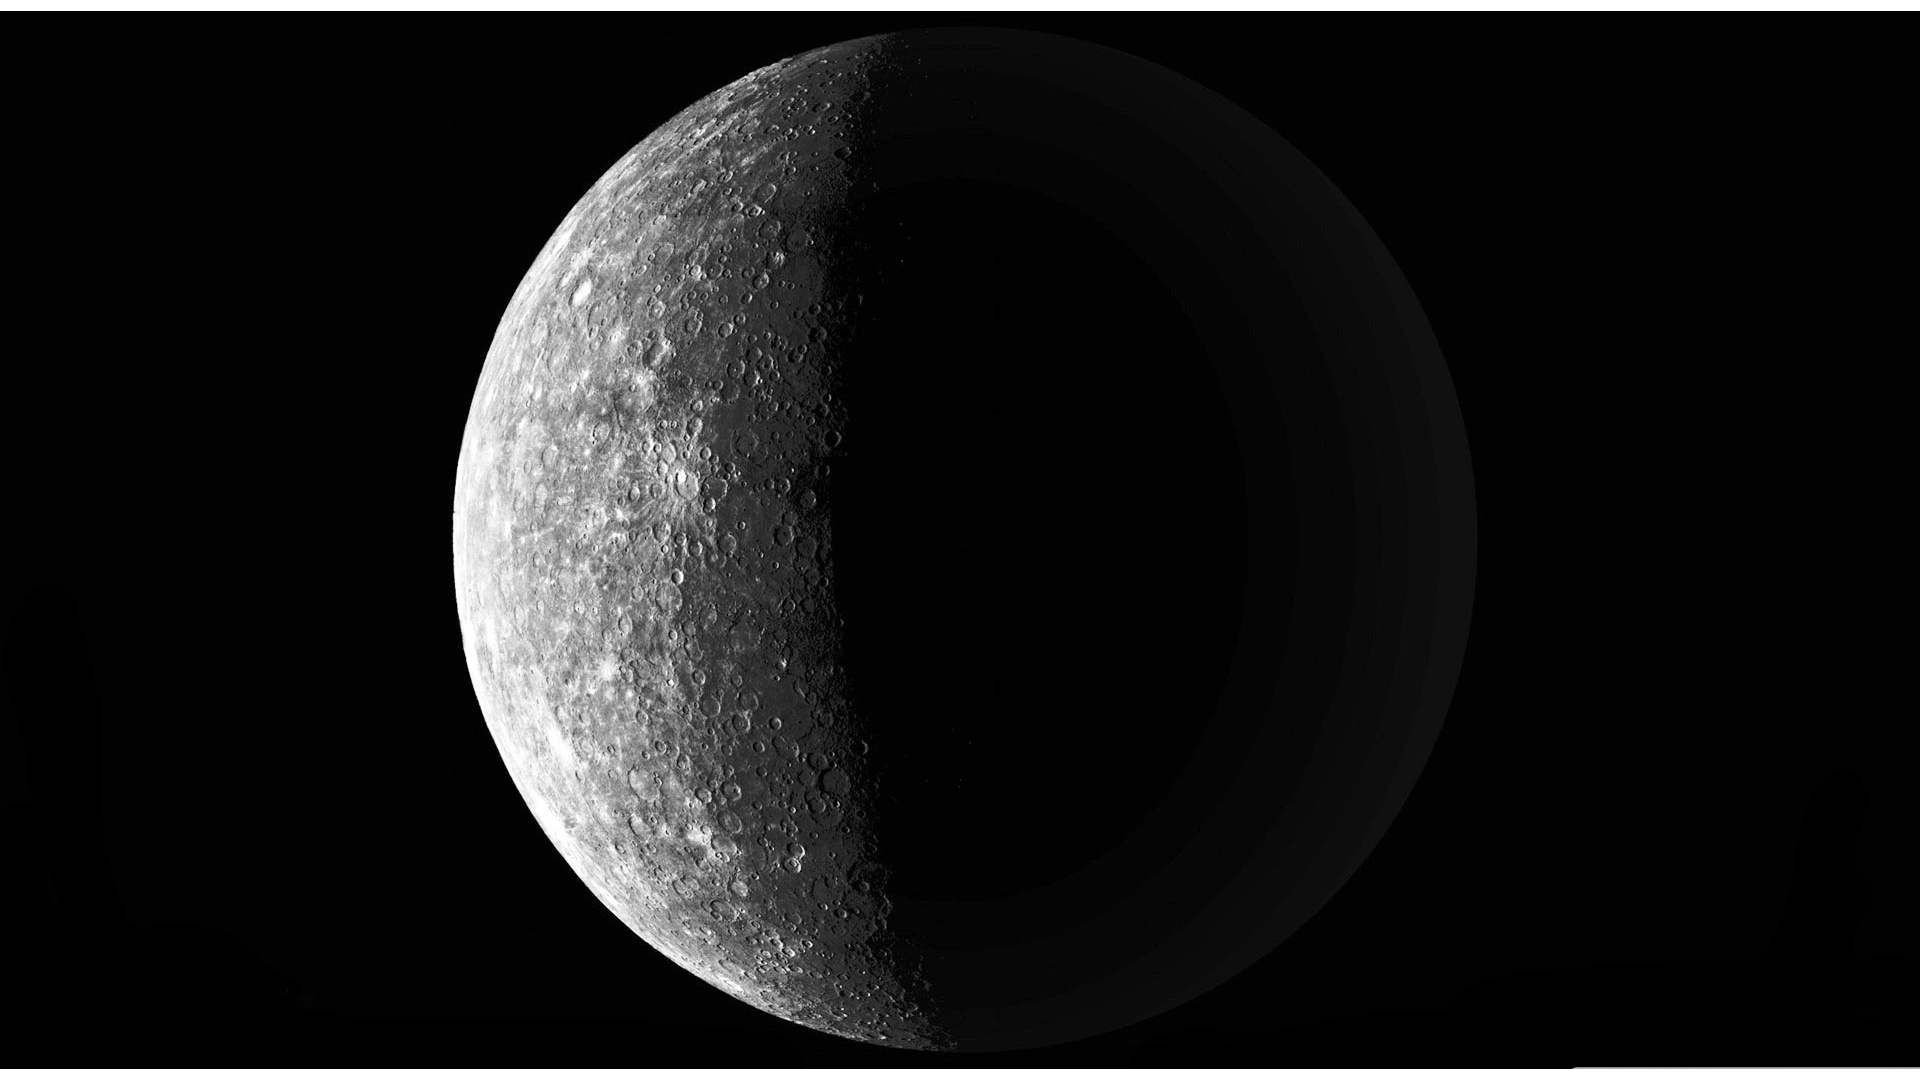 Os X Wallpapers Hd Mercury Planet Wallpapers 1920x1080 226364